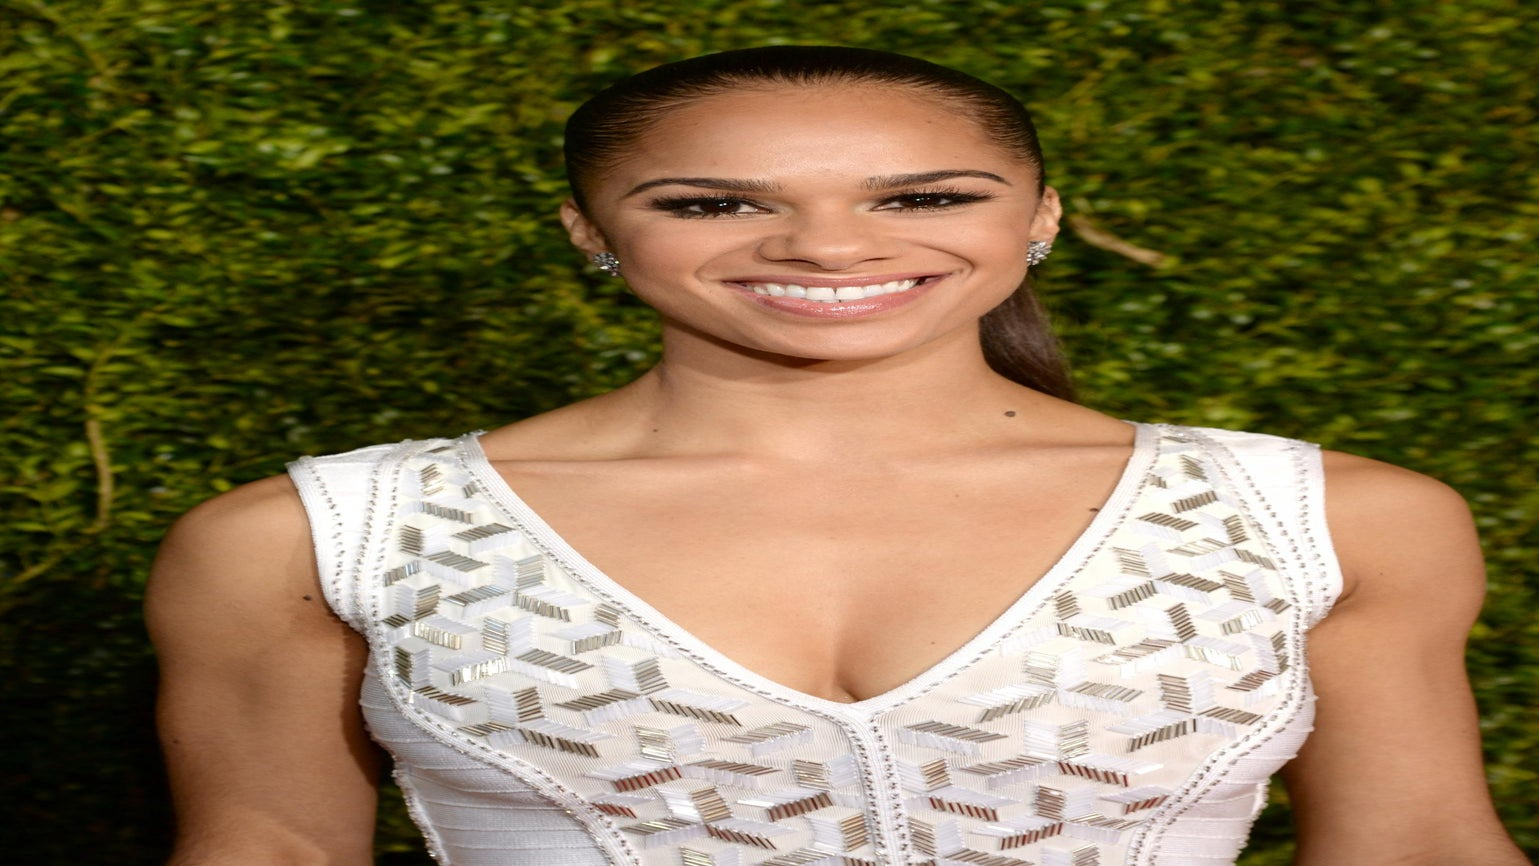 Misty Copeland's Wedding Dress By Inbal Dror Might Look Something Like This